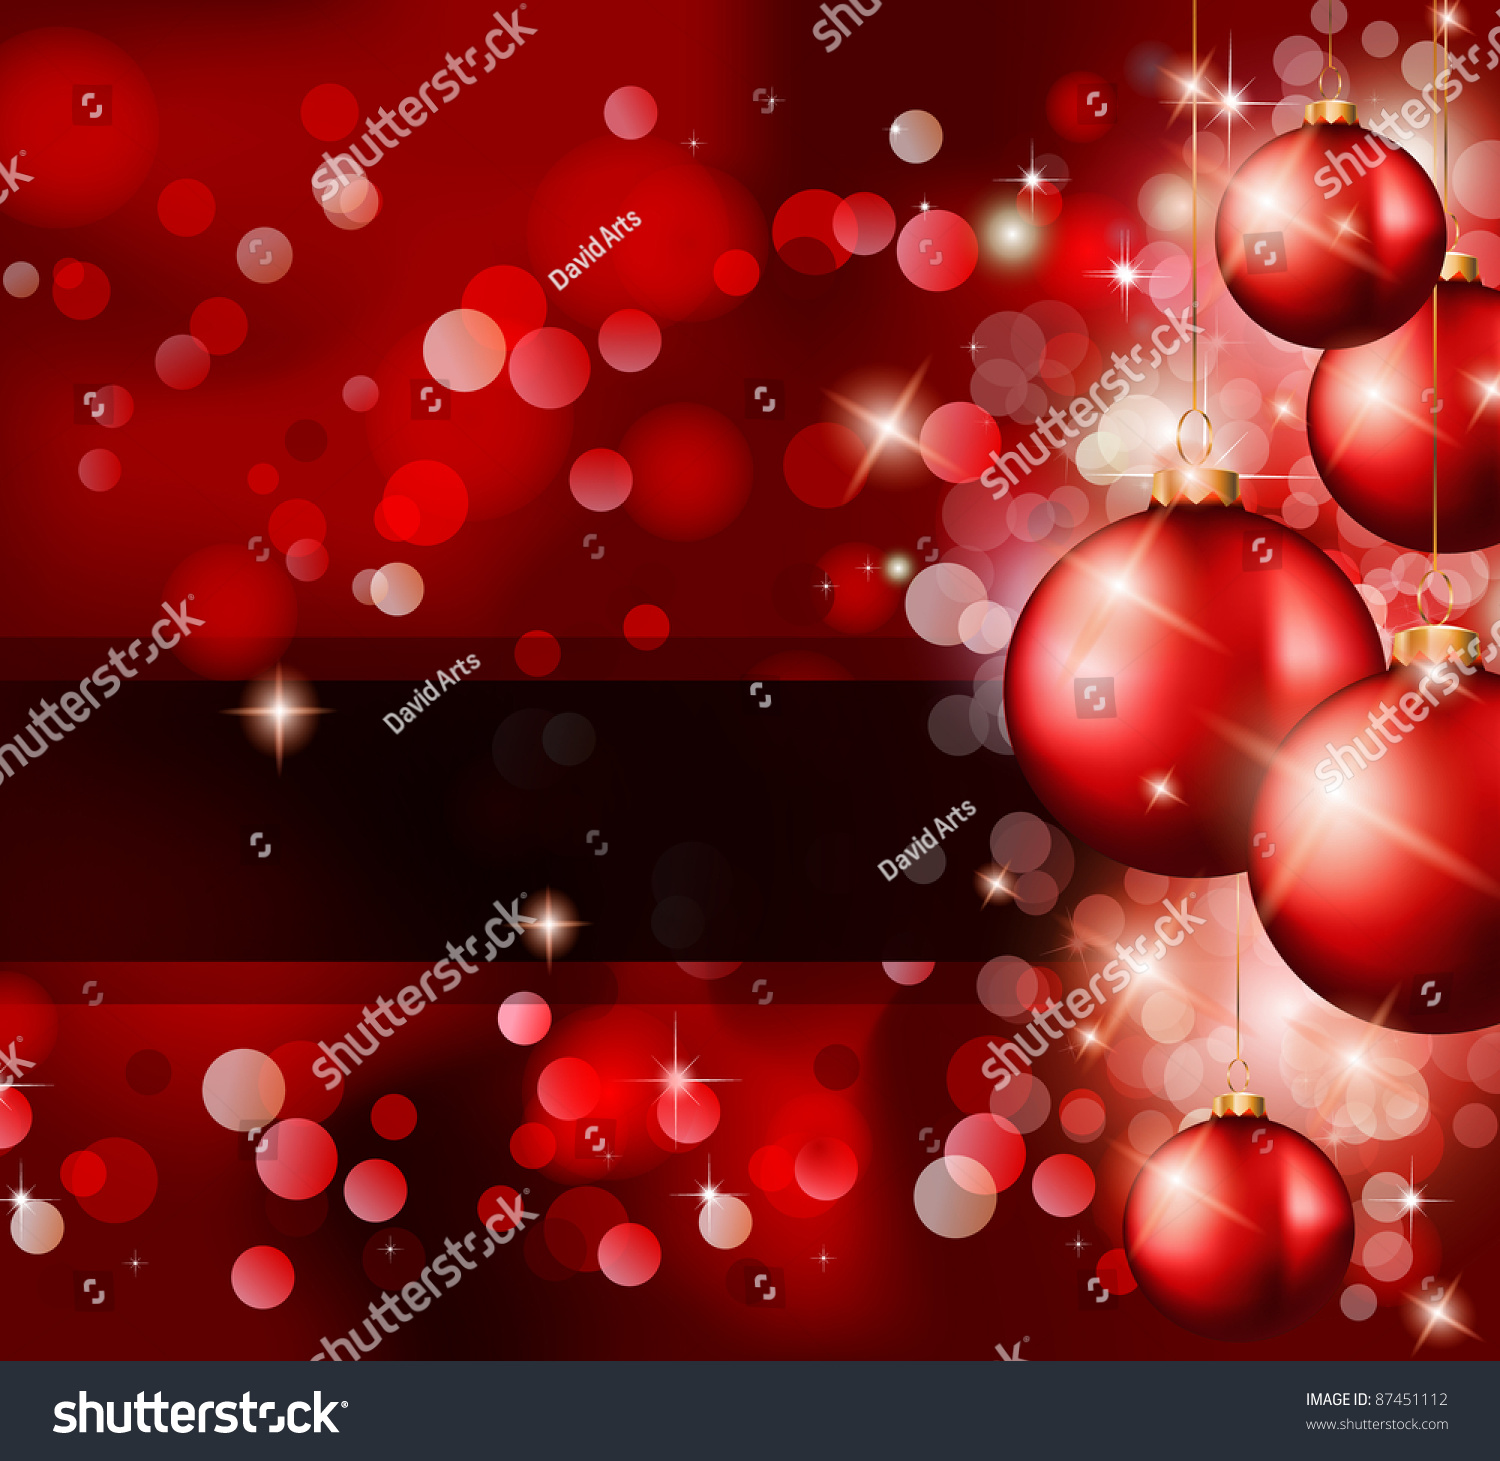 elegant classic christmas greetings background for flyers save to a lightbox